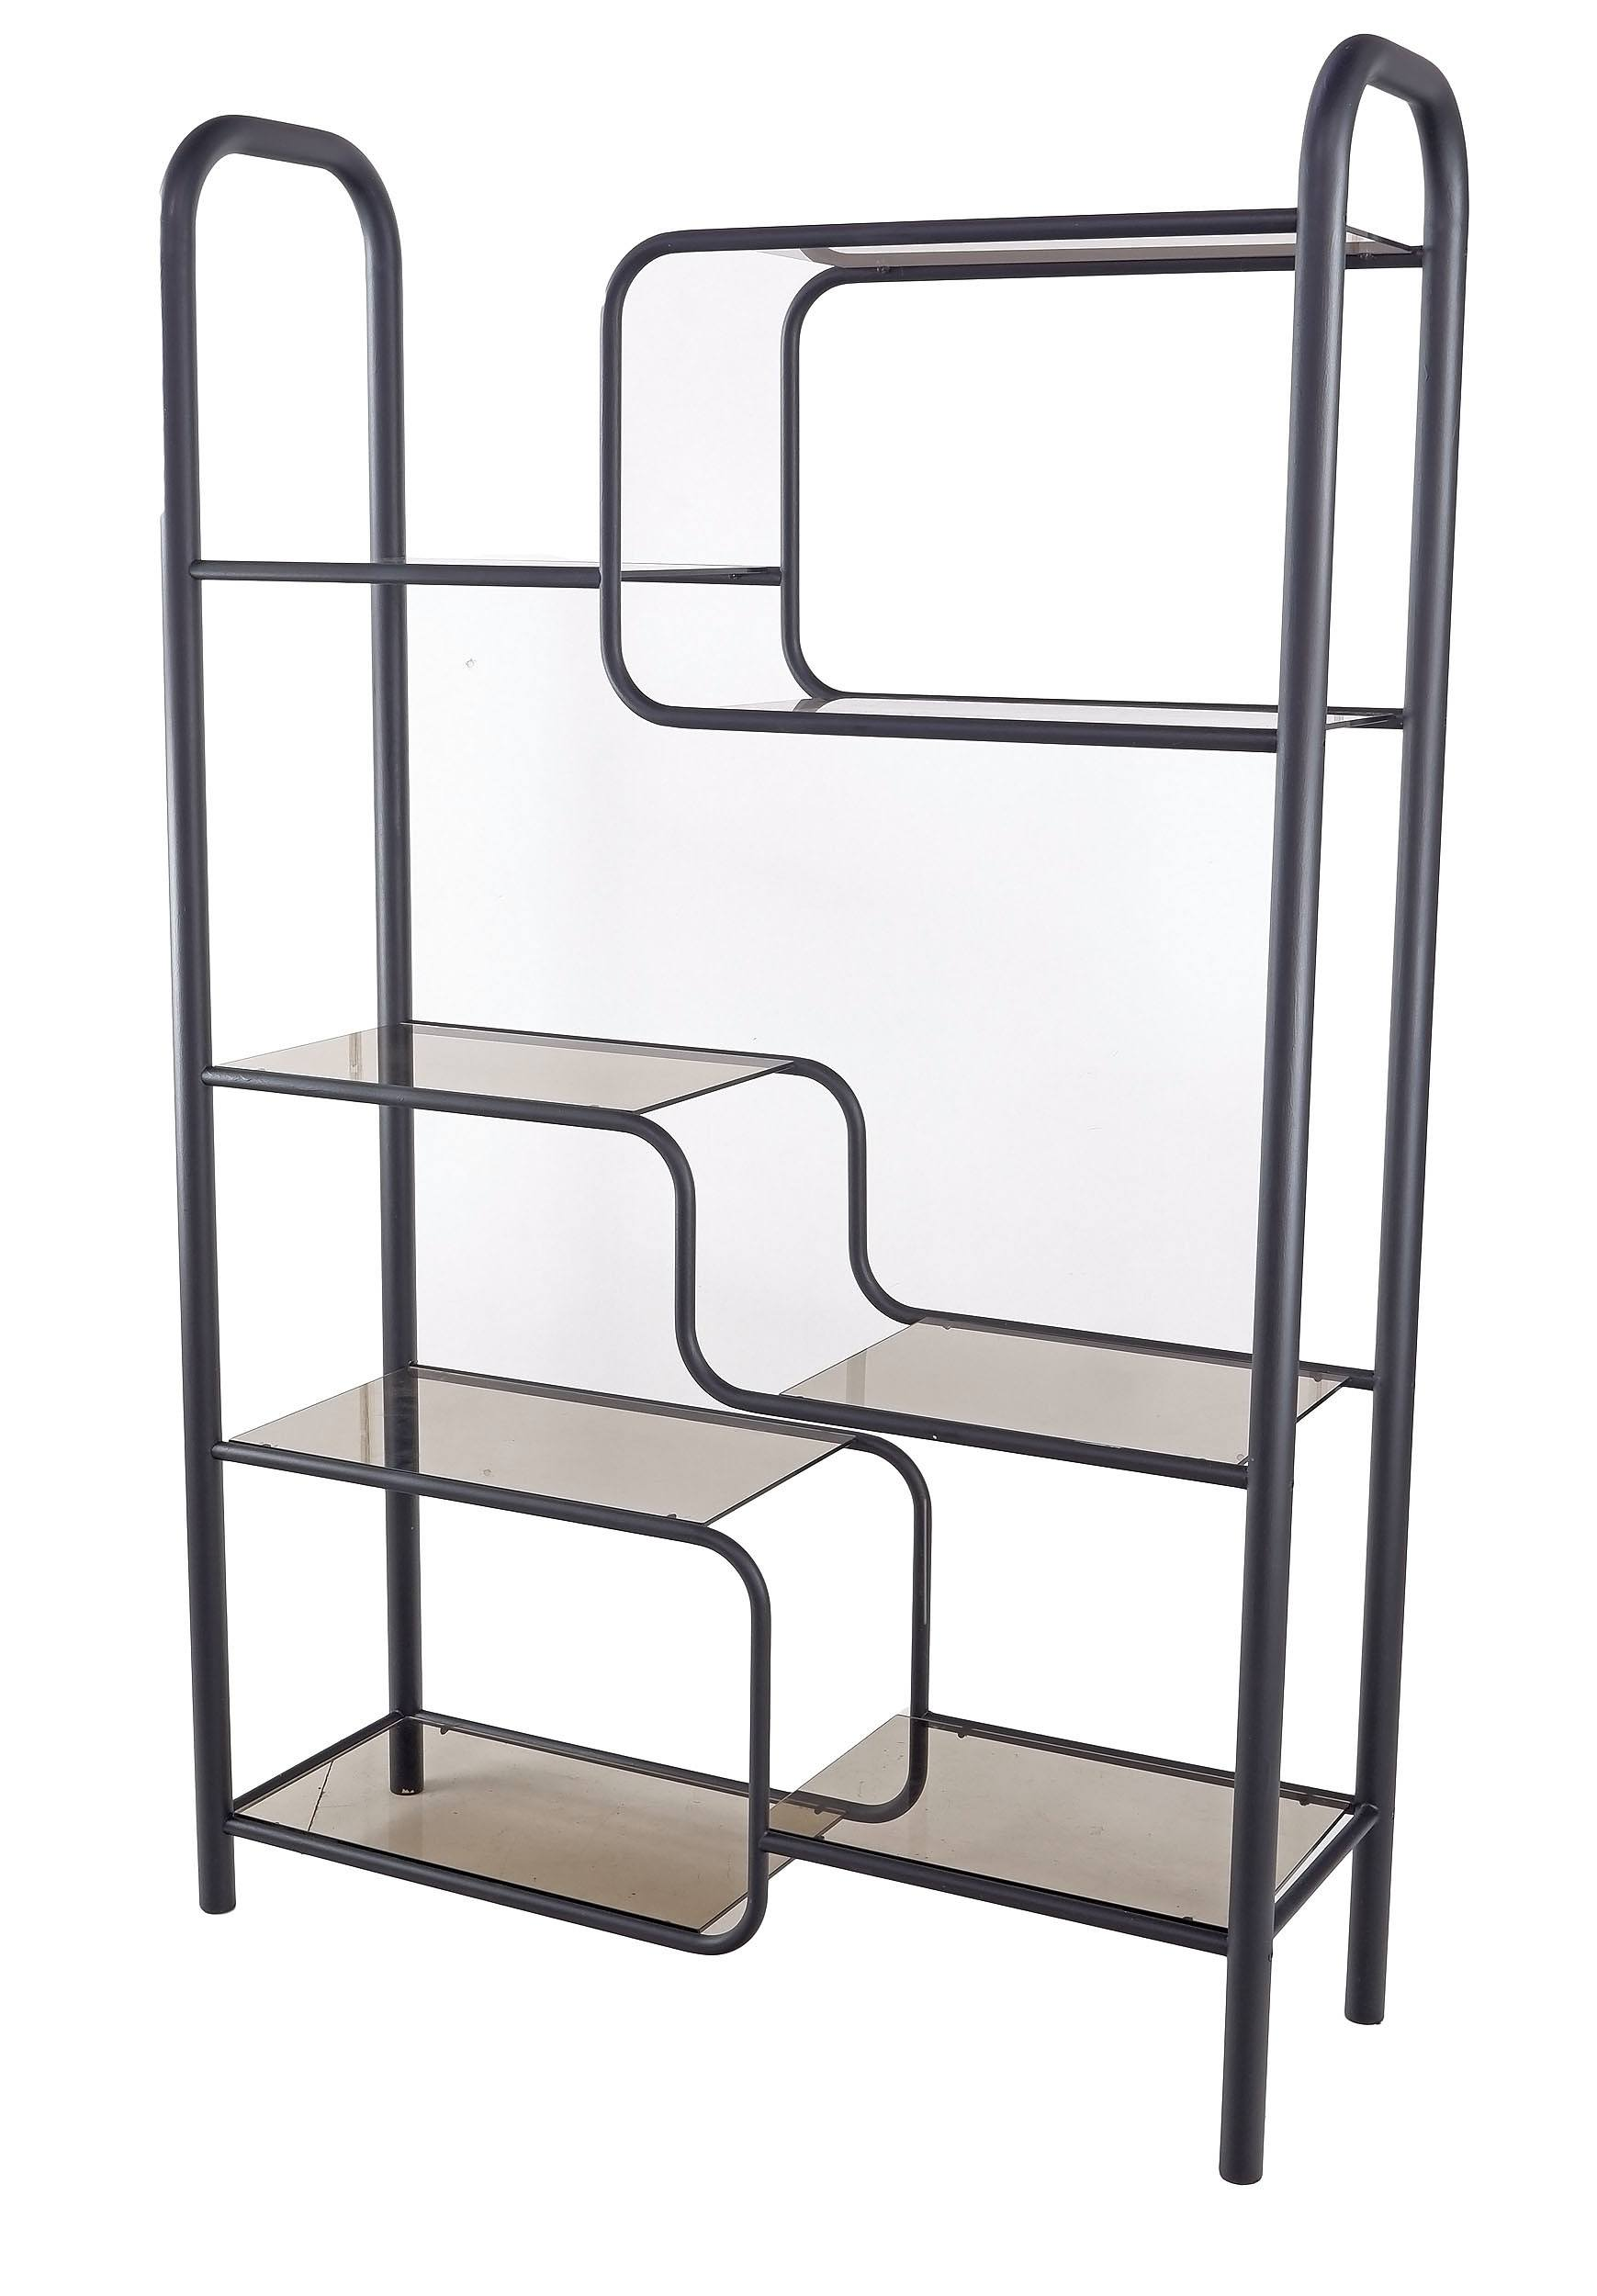 'Modernist Open Book Shelf with Smoked Glass Shelves'